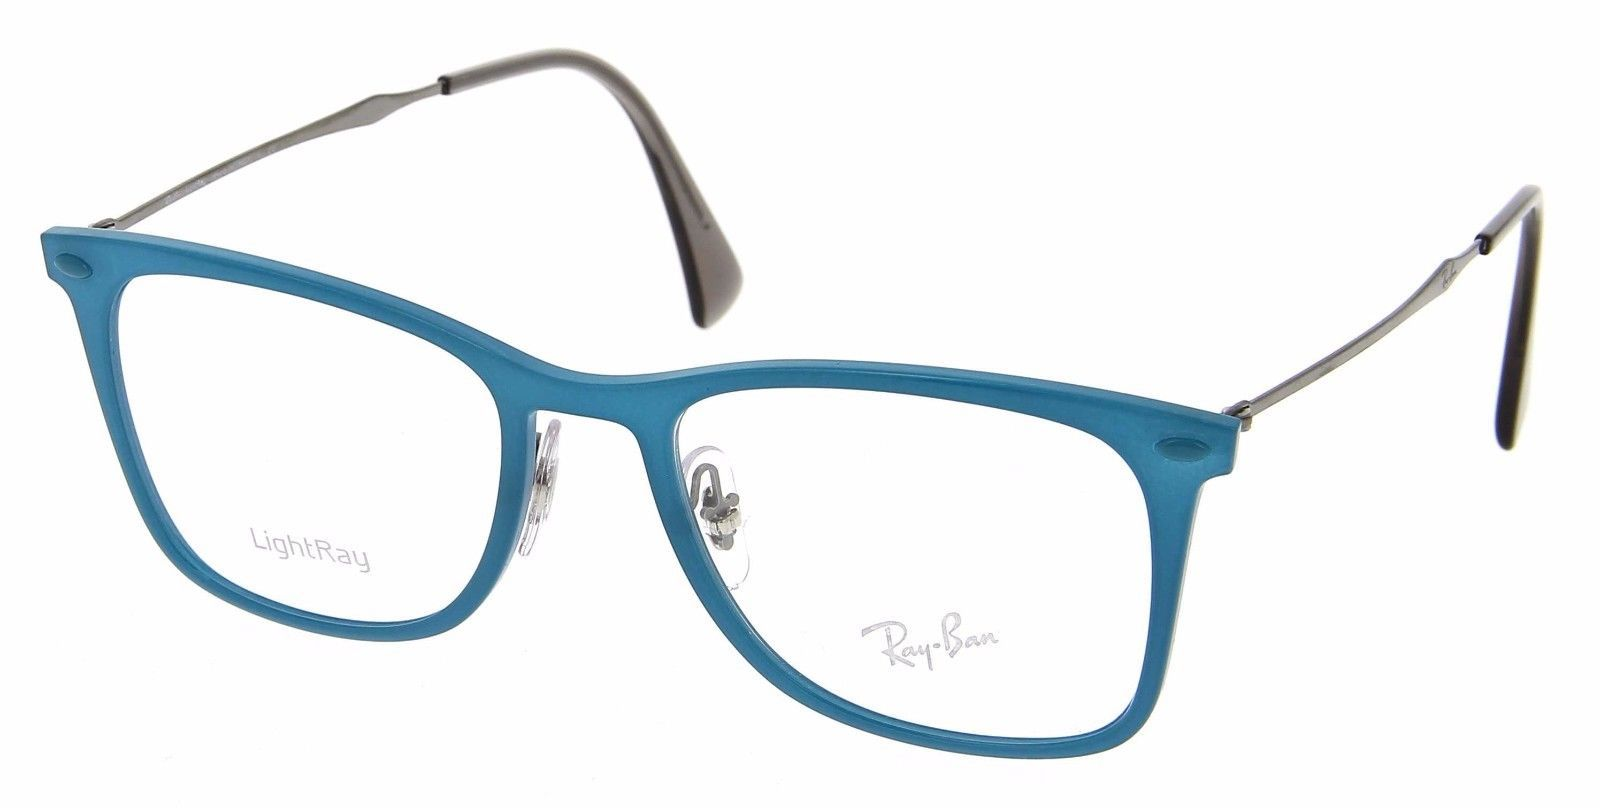 Ray Ban Eyeglass Frames: 6 listings